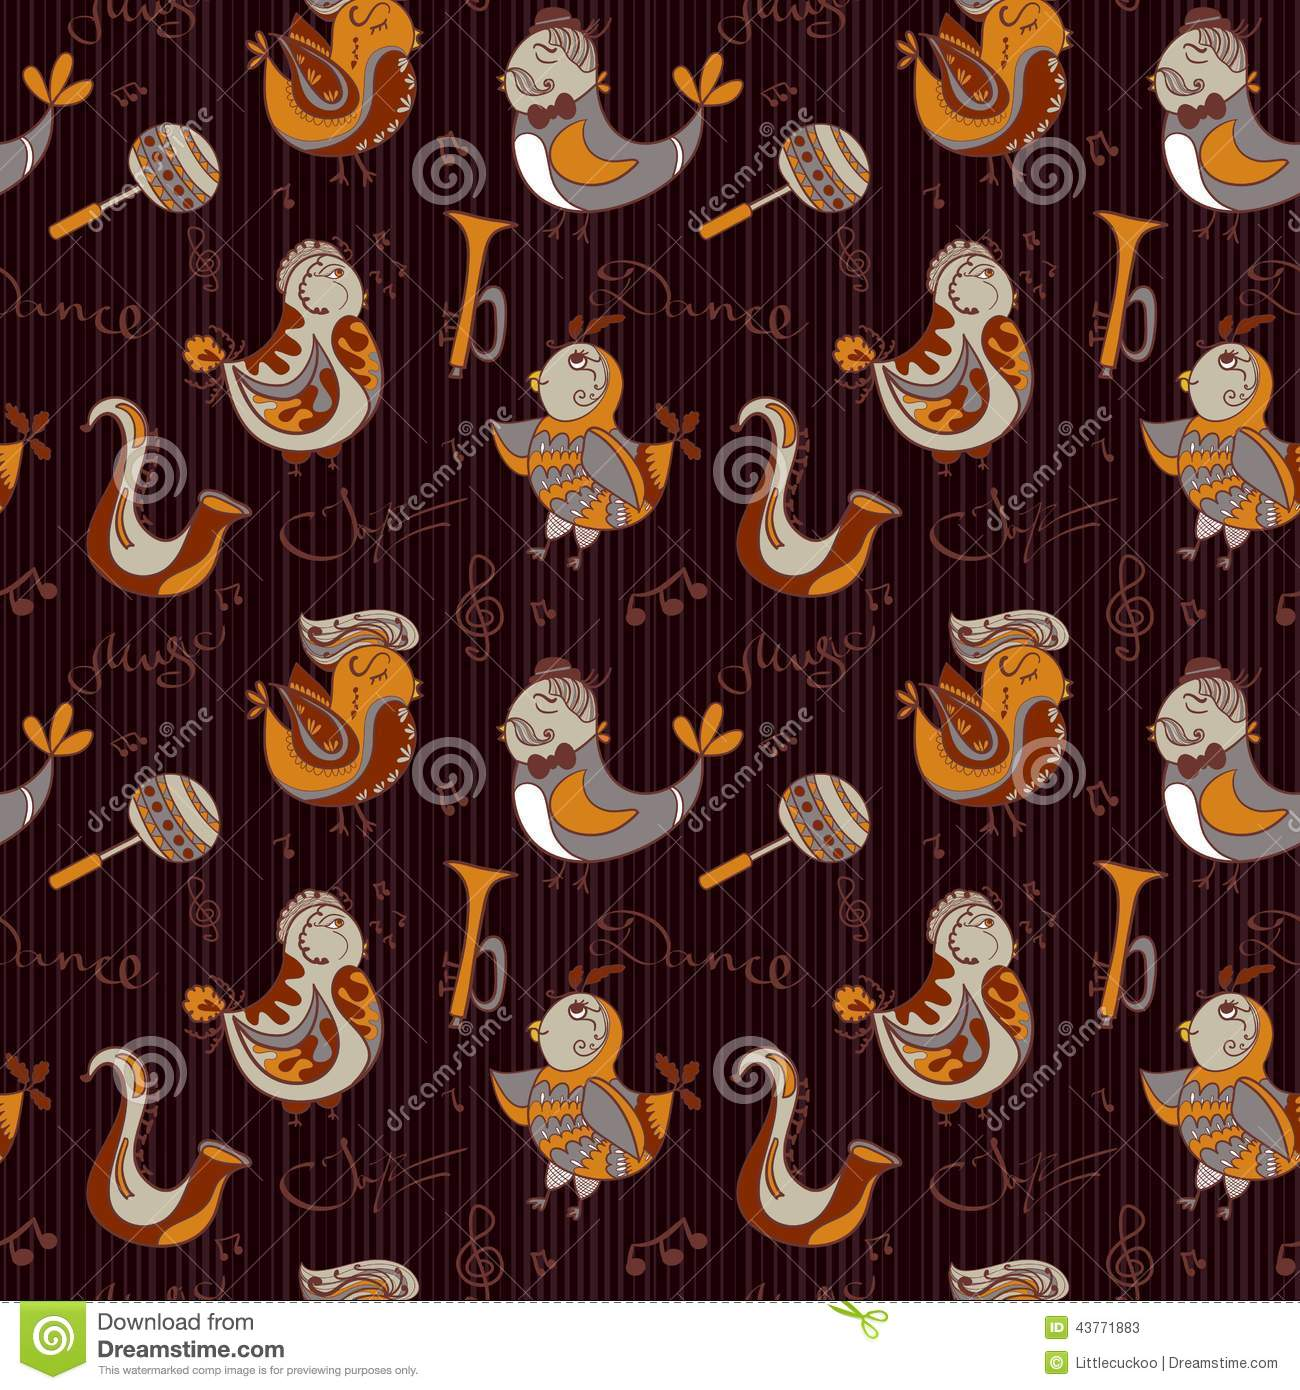 Cartoon jazz orchestra concept wallpaper birds sing and dancing cartoon jazz orchestra concept wallpaper birds sing and dancing seamless pattern can be used for wallpaper pattern fills web p voltagebd Image collections